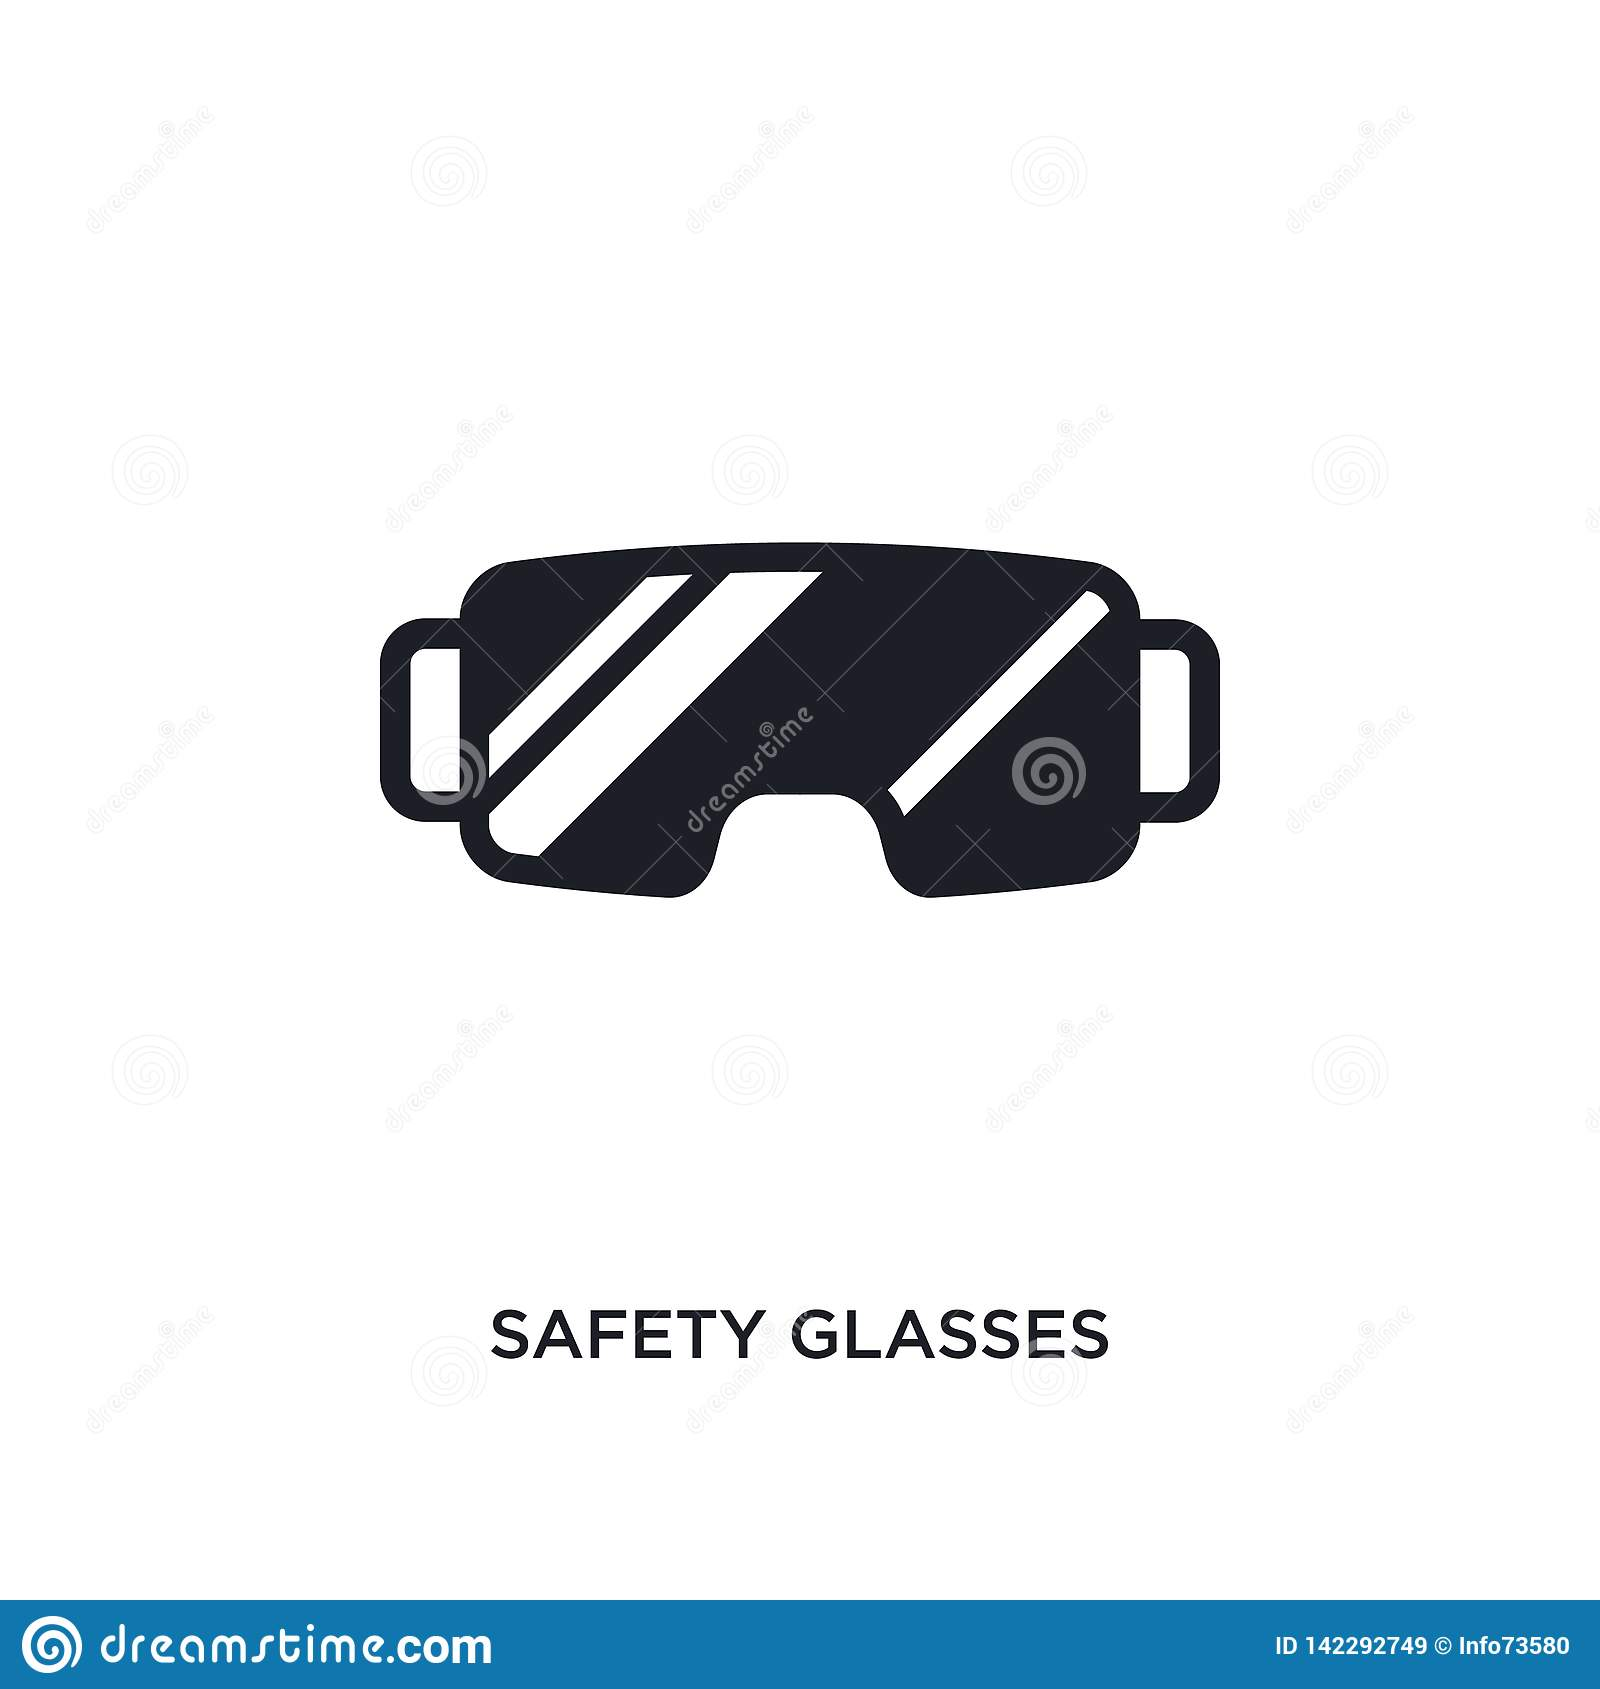 safety glasses isolated icon. simple element illustration from winter concept icons. safety glasses editable logo sign symbol